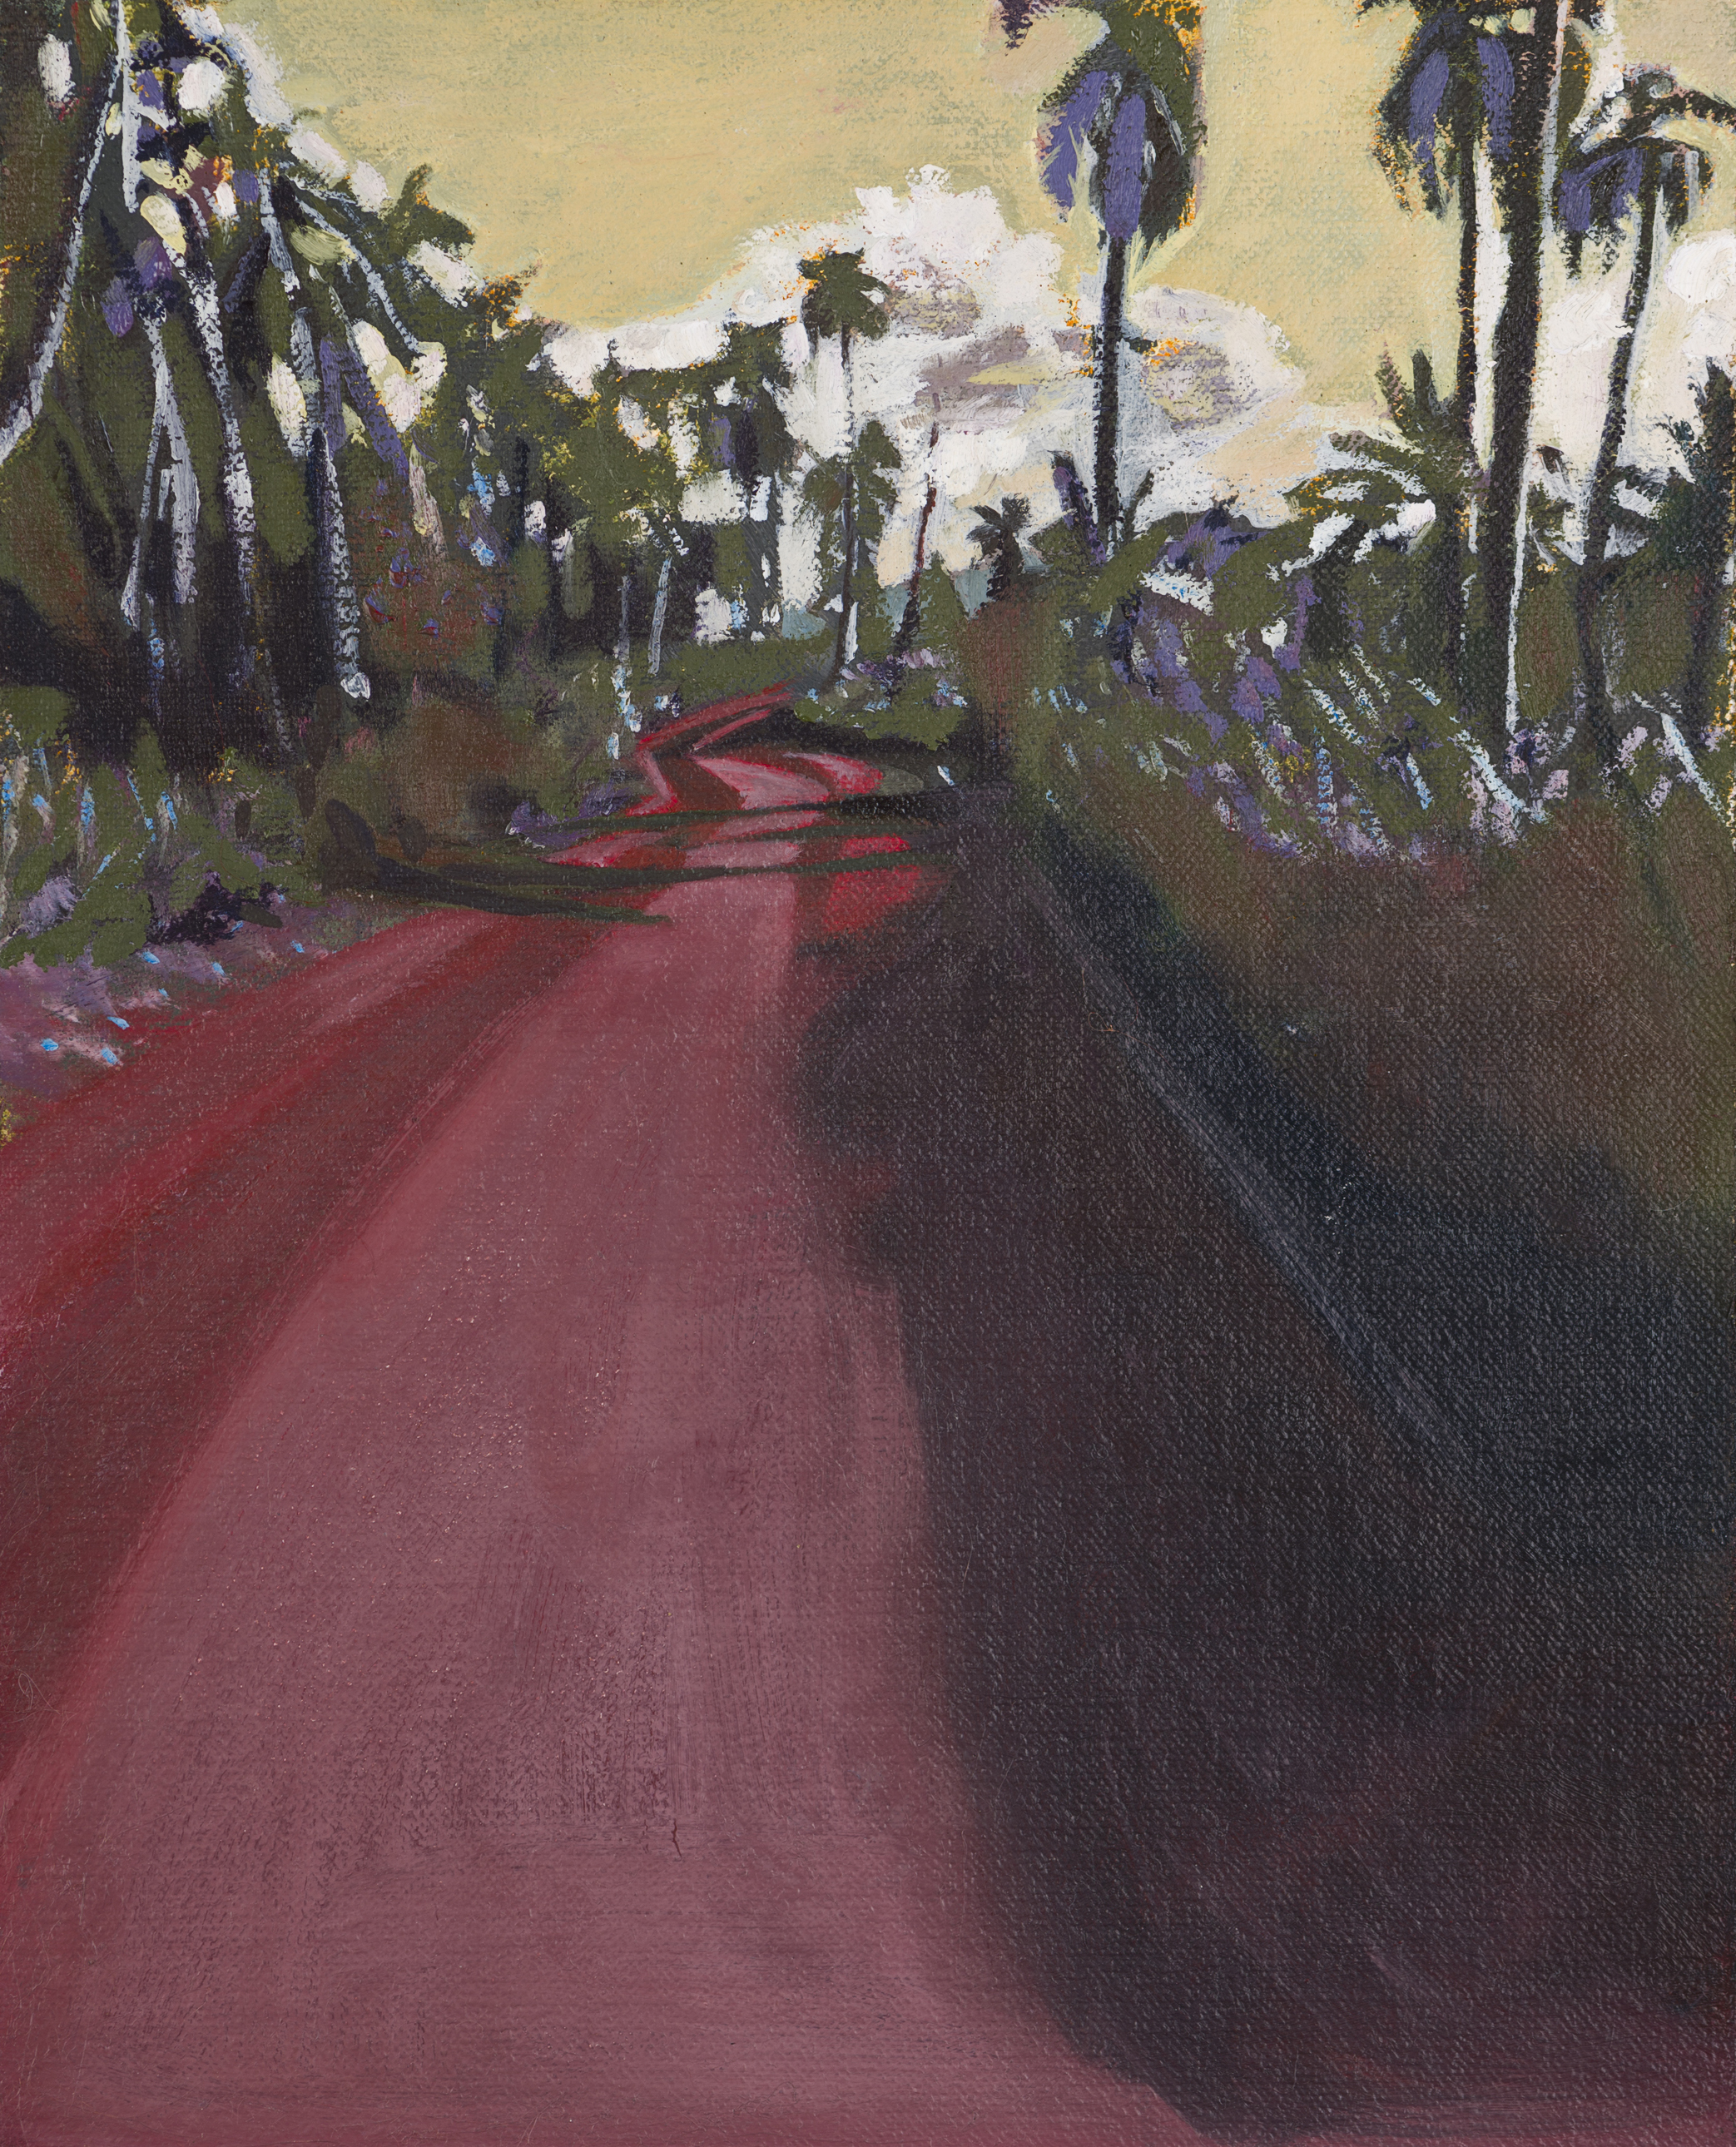 Boca de Miel, Cuba, 2015, oil on linen on board, 10 x 8in